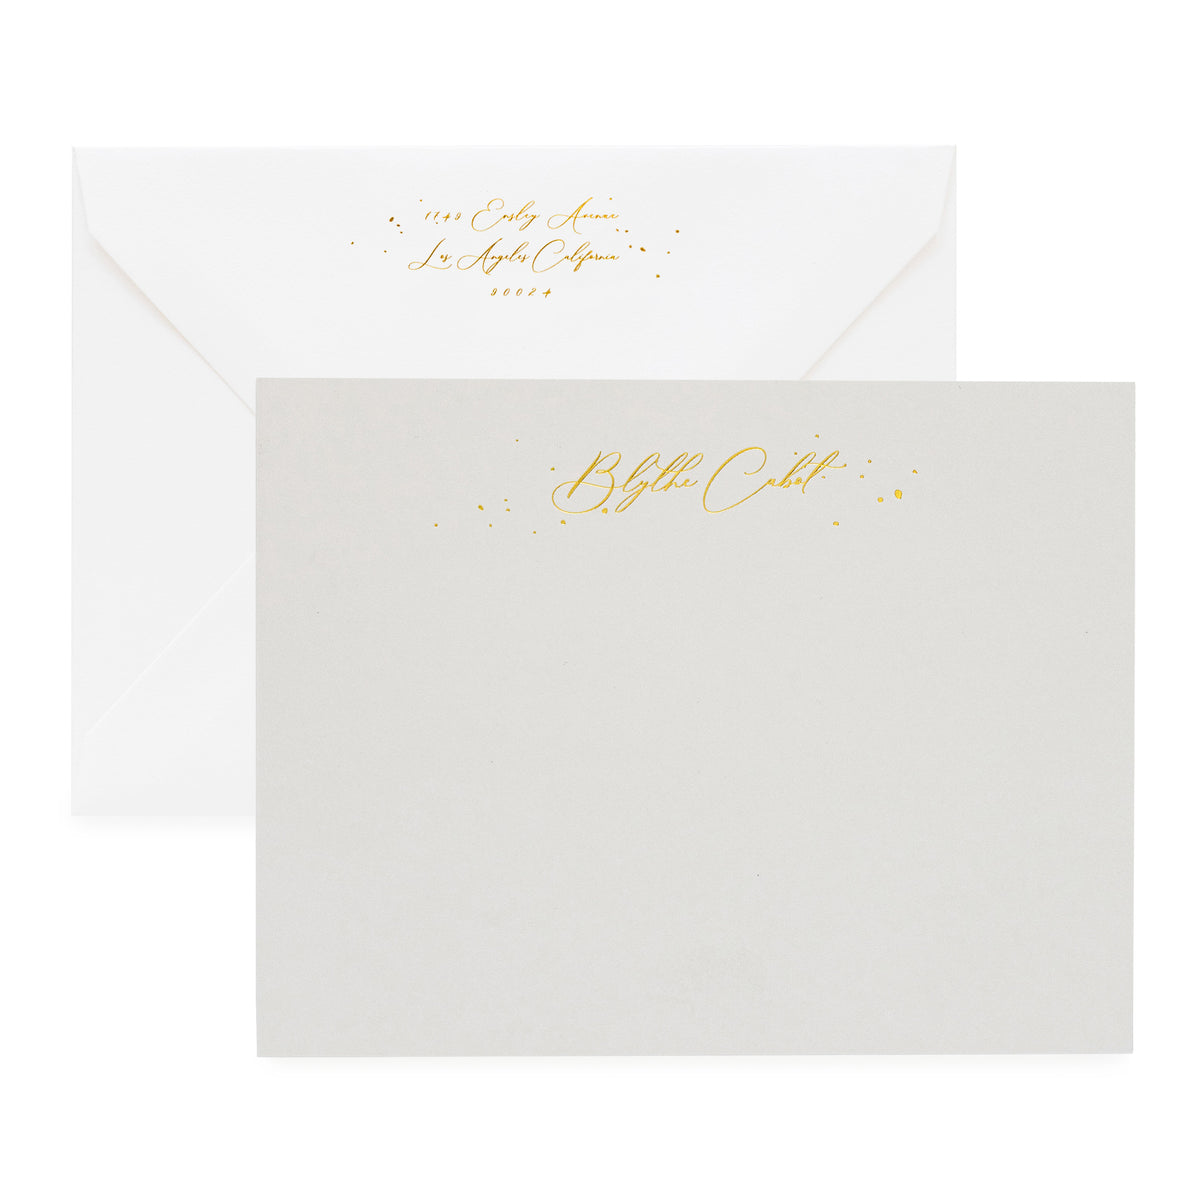 Grey stationery set with gold foil script name and gold return address detail